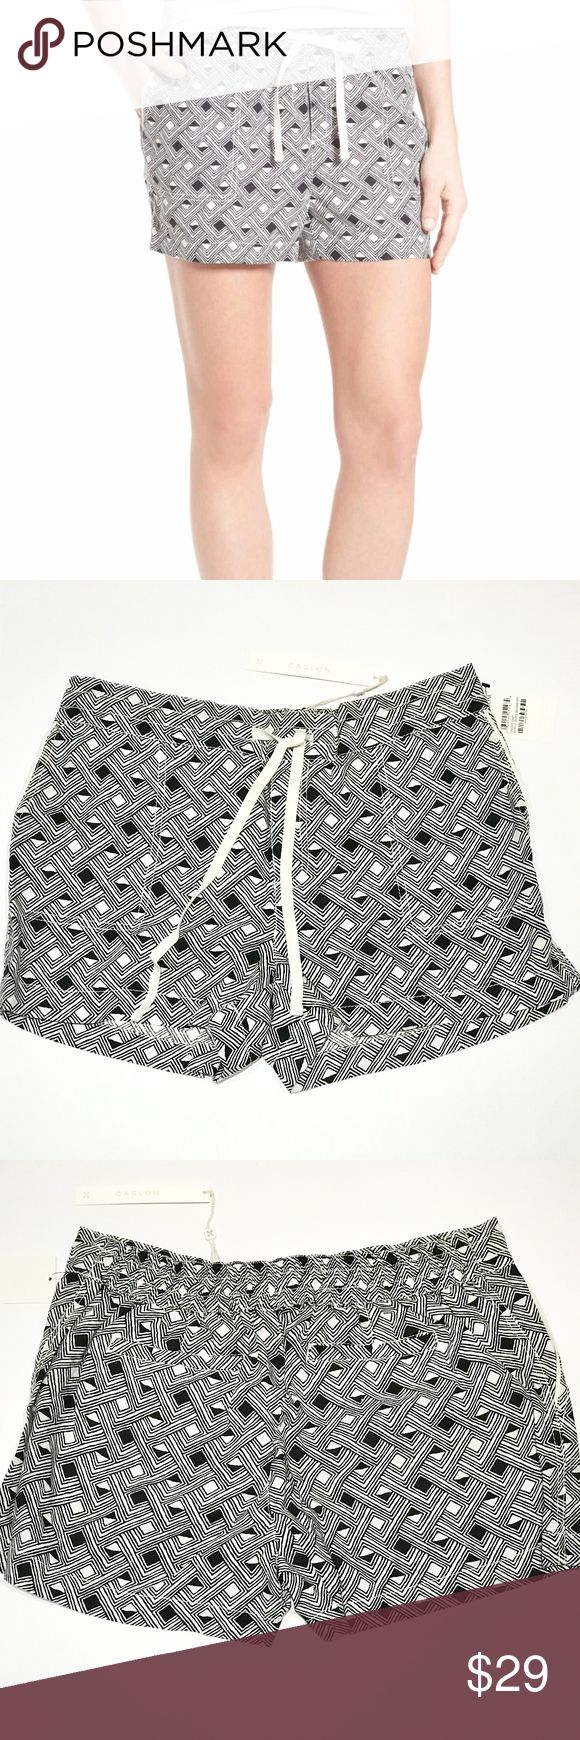 """Caslon 100% Linen Shorts Size Petite Medium A drawstring waist caps off the relaxed ease of linen-woven shorts in an array of geometric prints in shades of black and ivory white. Petite sizes best fit women 5'4"""" & under. - Petite: 32"""" waist; 3"""" inseam; 24"""" leg opening; 10"""" rise; Size: Petite Medium - Pull-on style - Front slant pockets; back welt pockets - 100% linen - Machine wash cold, tumble dry low Caslon Shorts"""